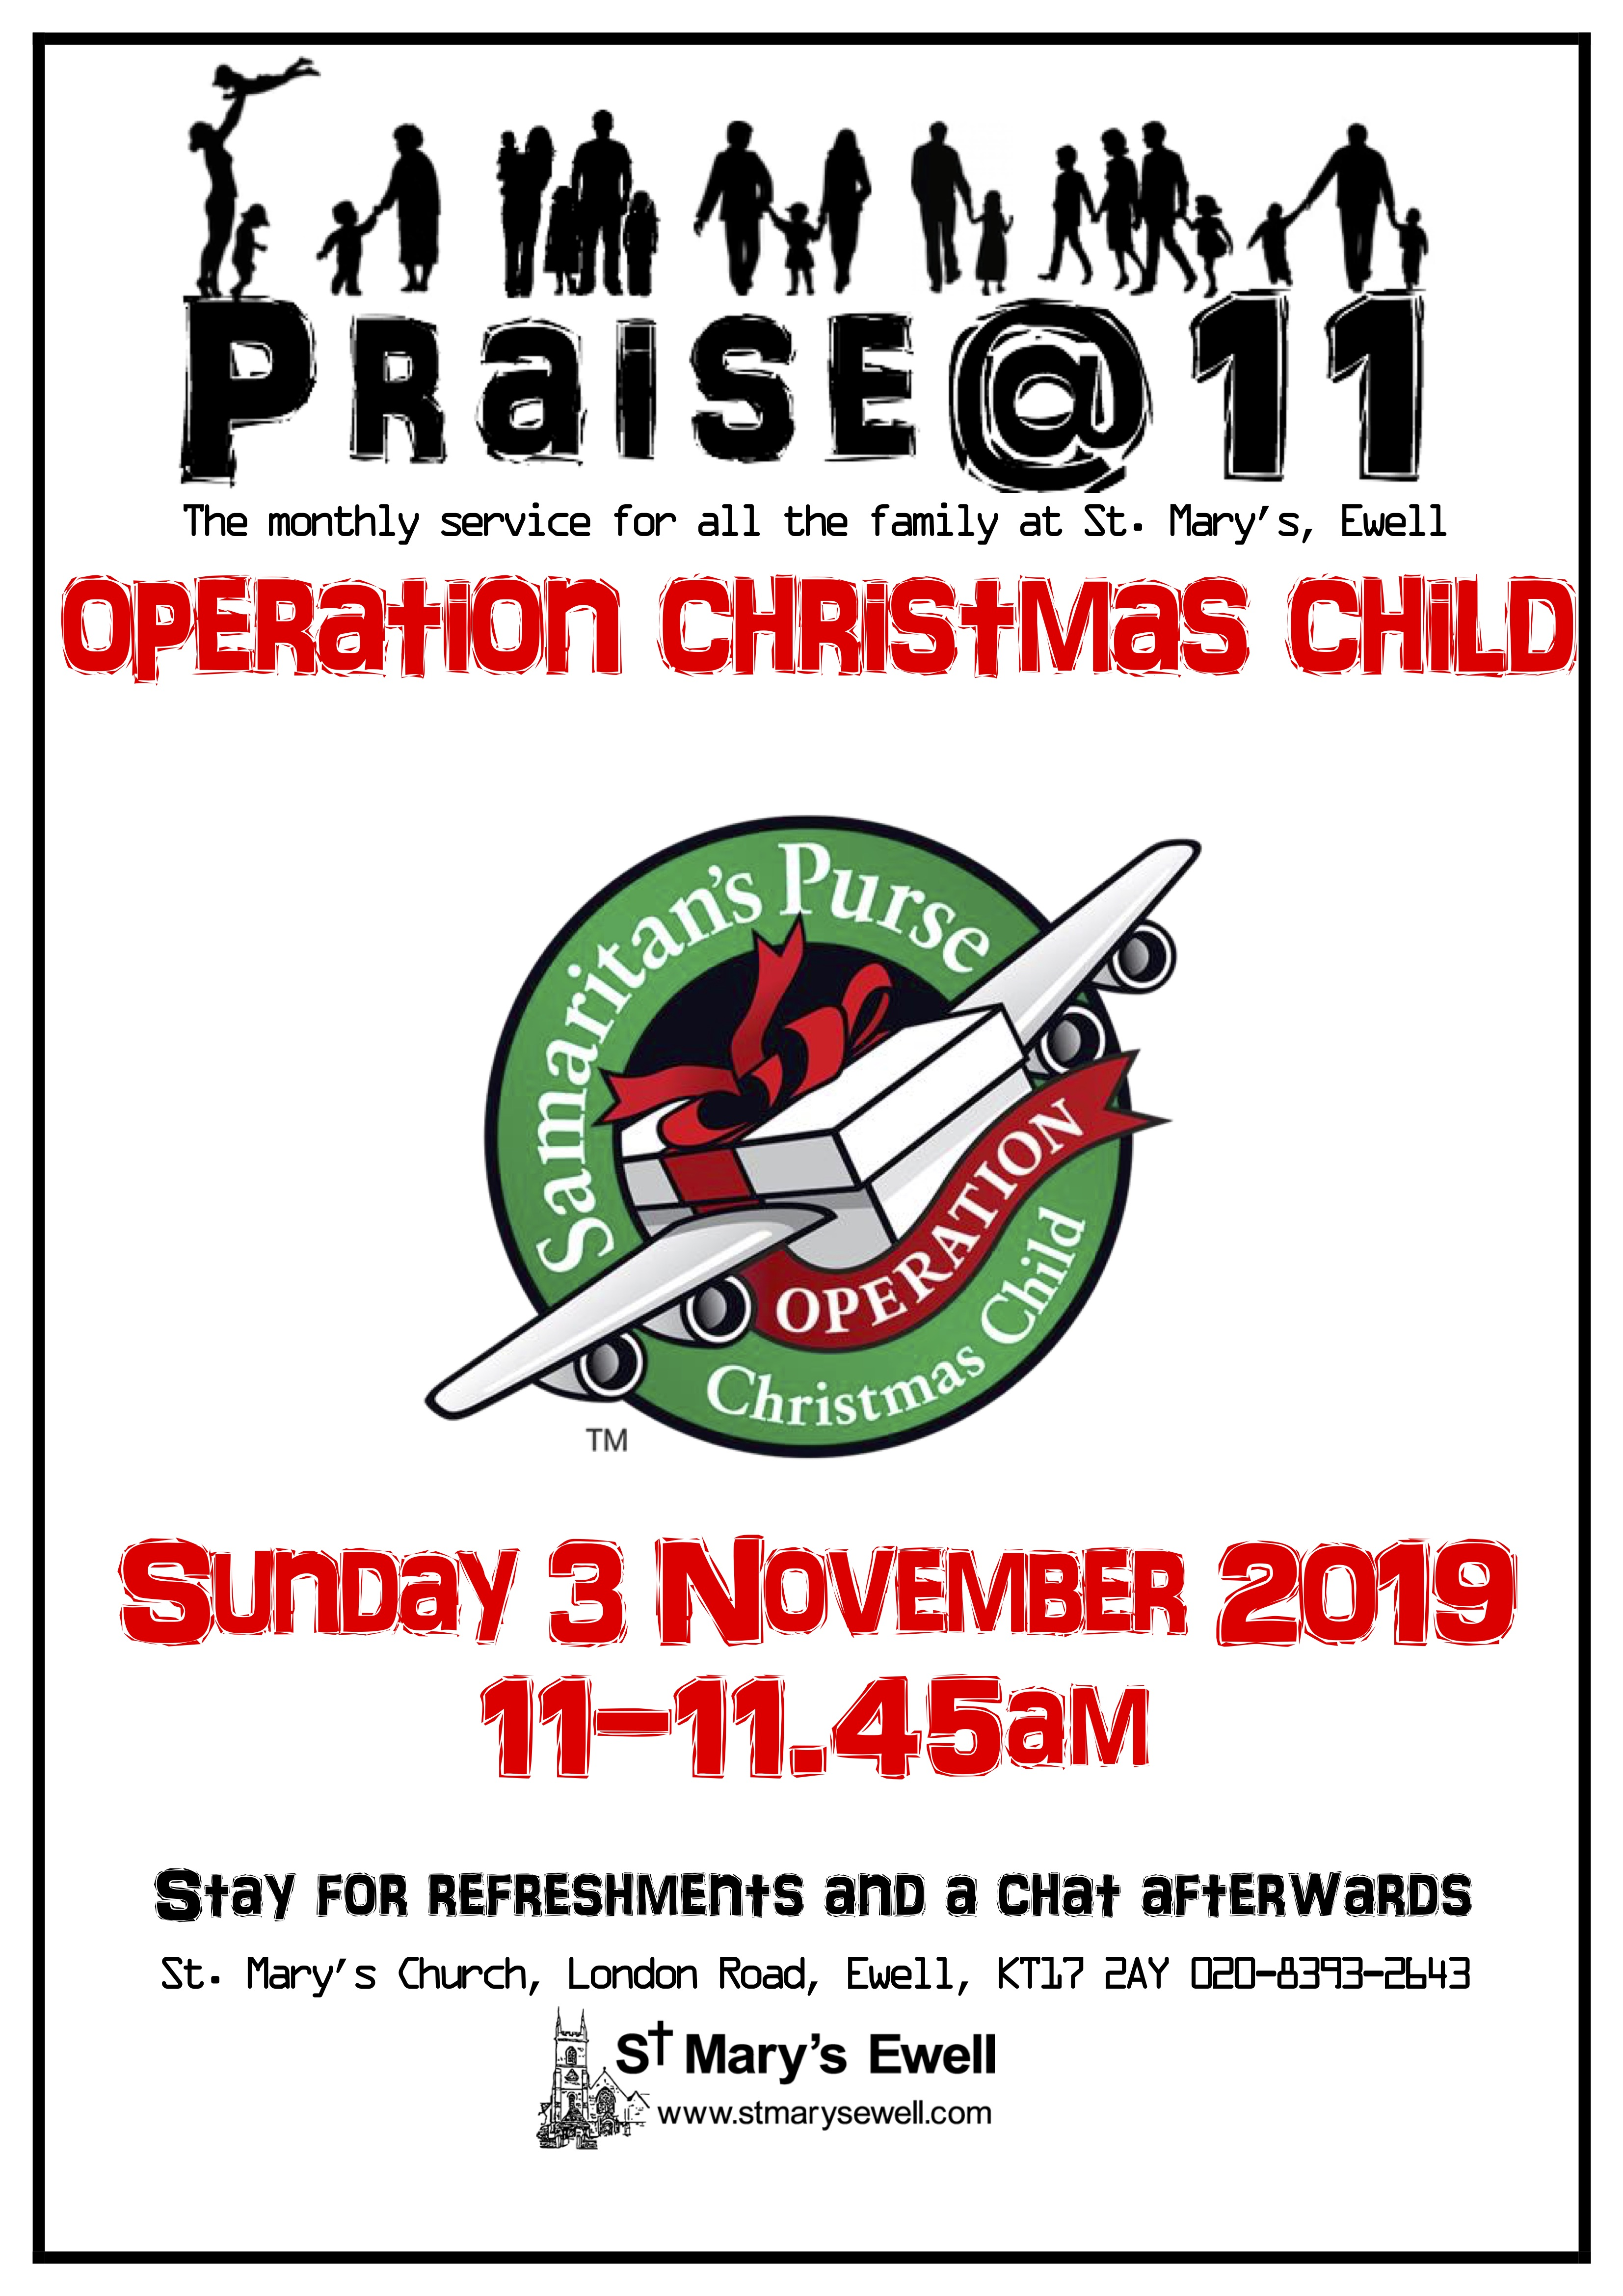 Christmas Operation Child.Praise 11 Operation Christmas Child St Mary S Ewell